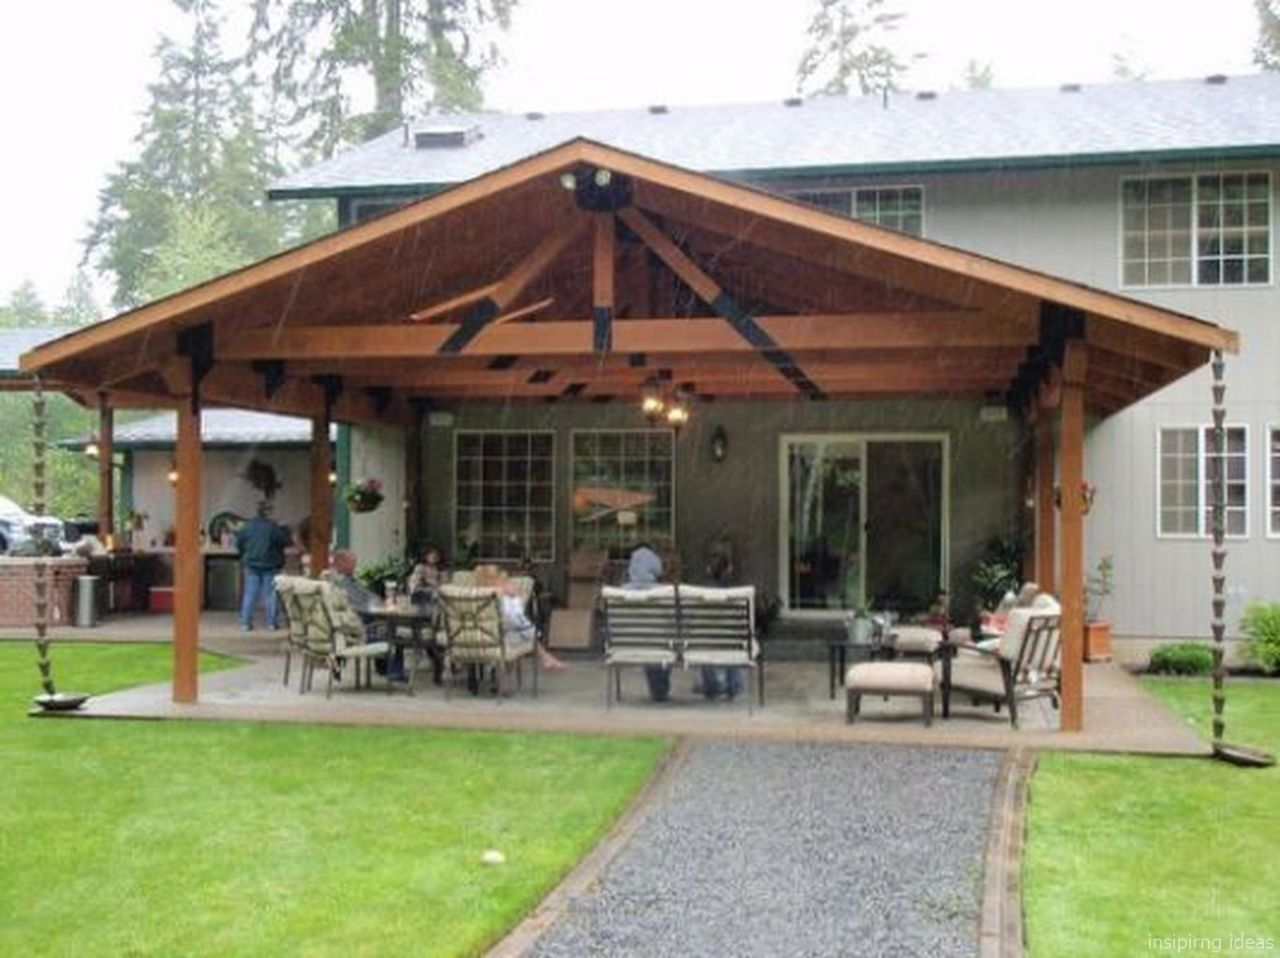 Inexpensive Covered Patio Ideas Cheap Affordable Covered ... on Patio Cover Ideas Cheap id=51552